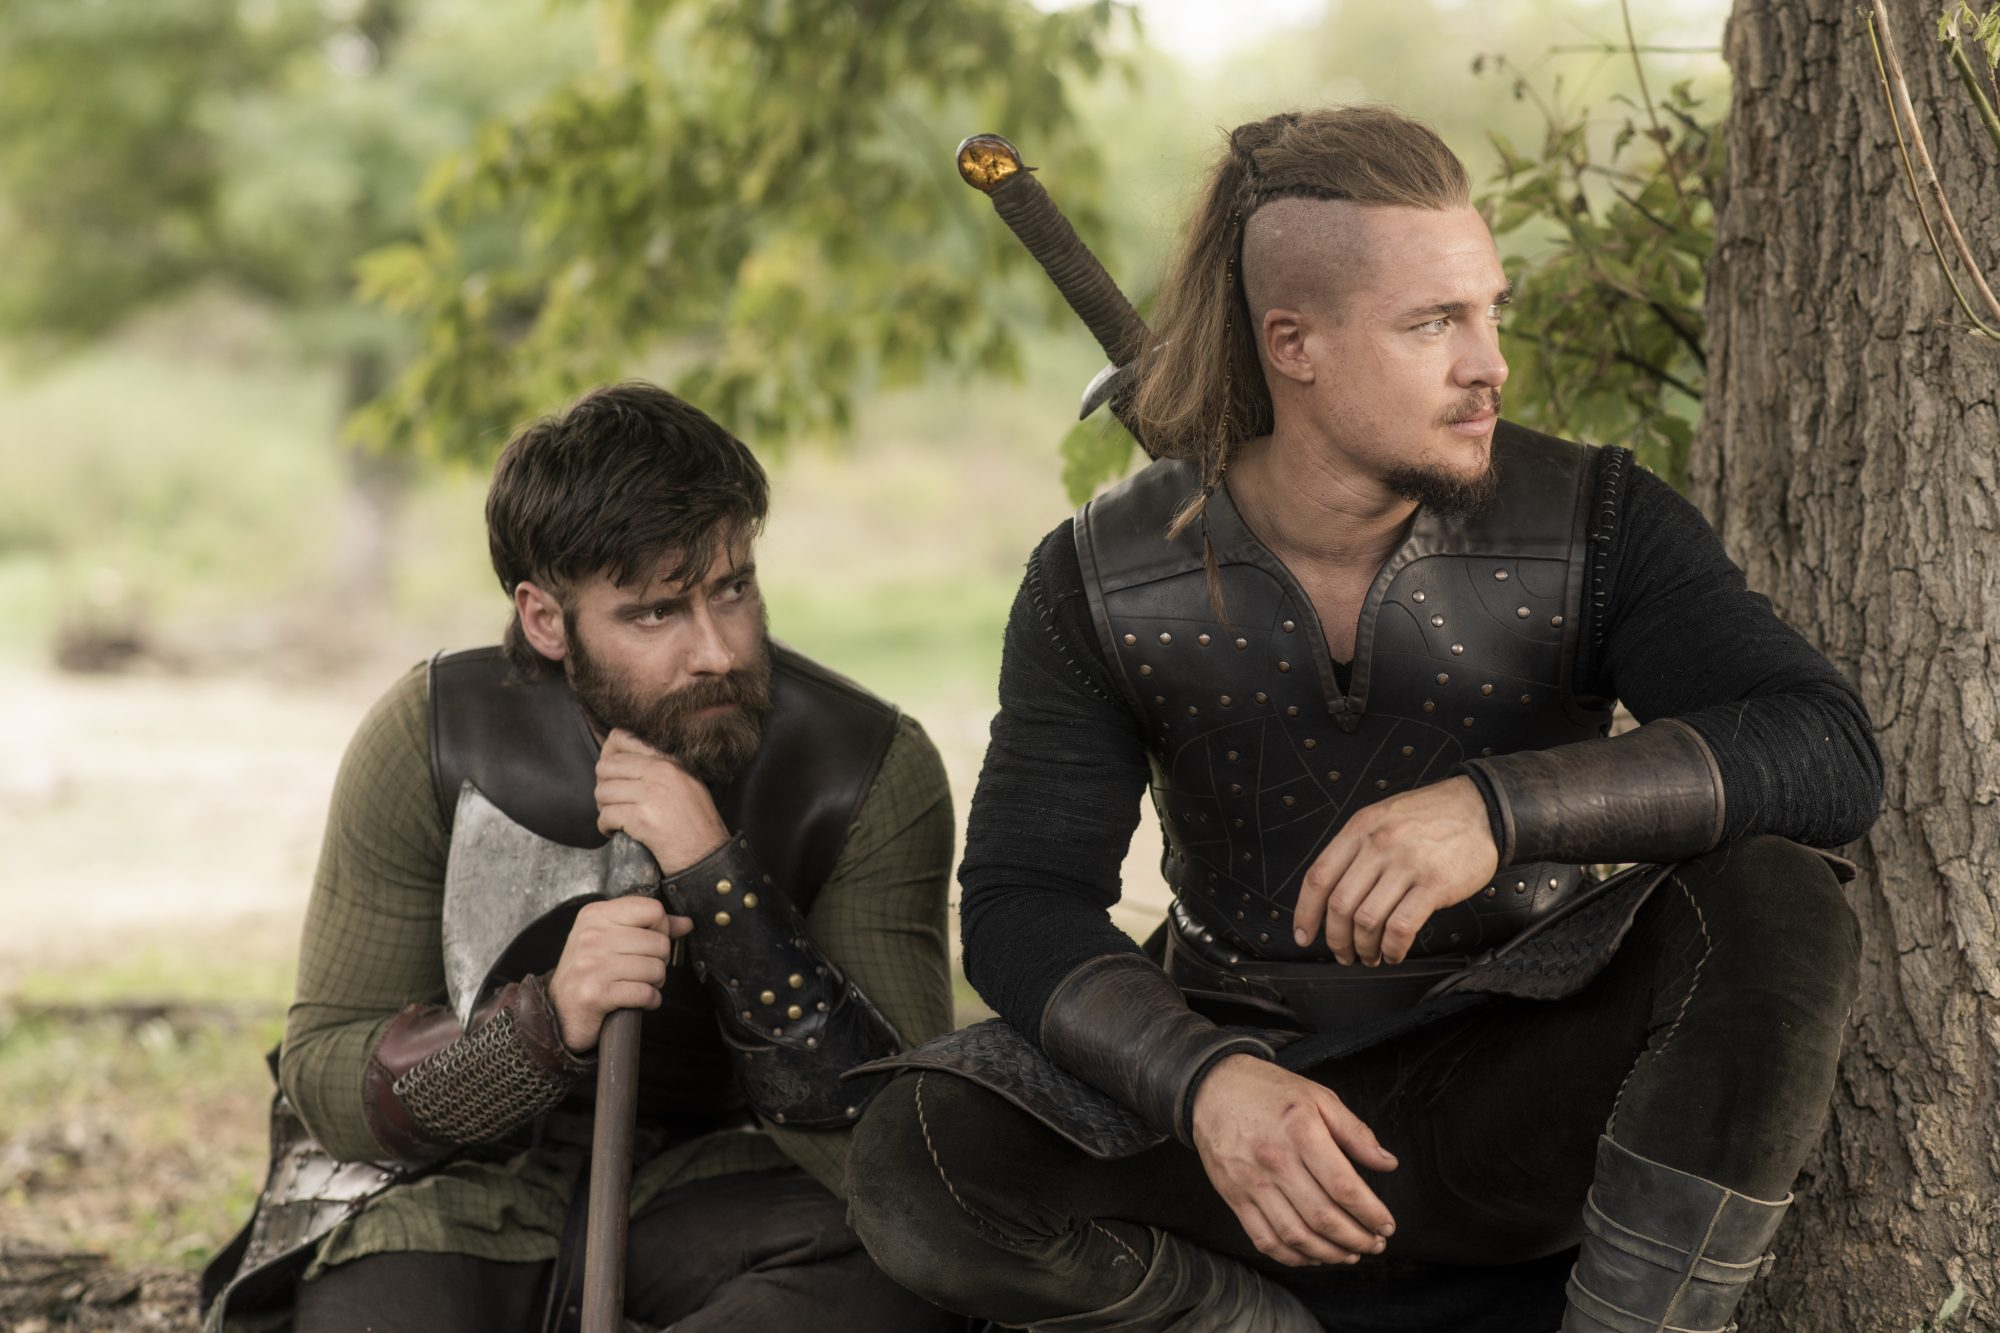 The Last Kingdom Season 5 Renewed Here Are All The Latest Updates Associated With The Show